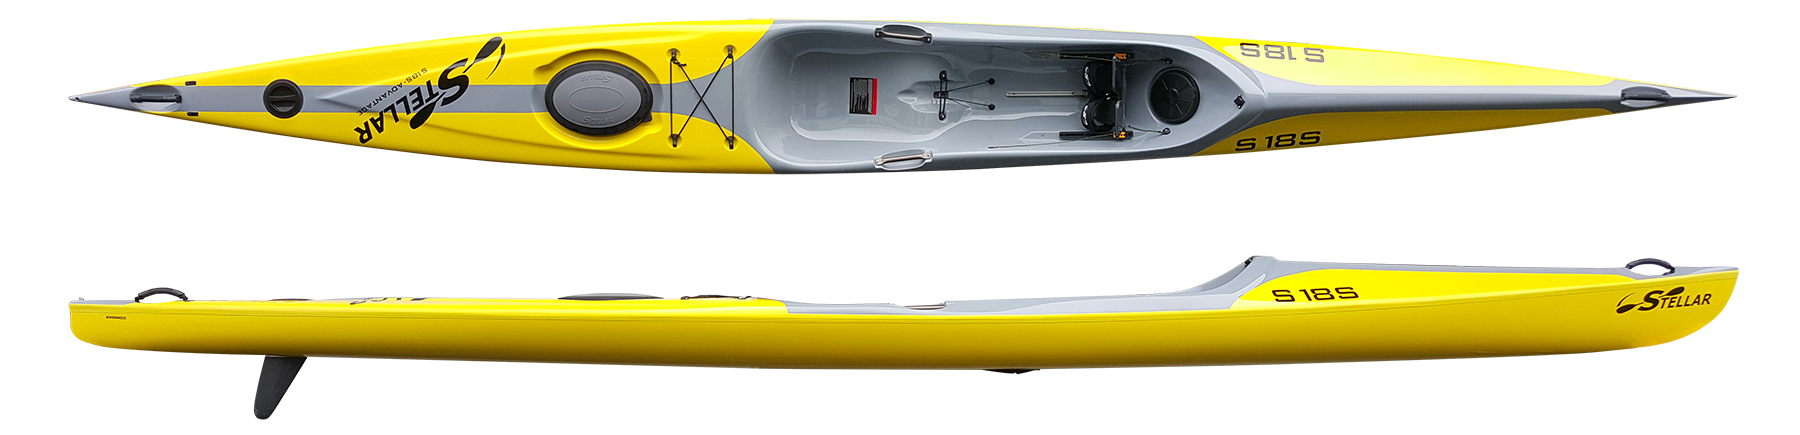 S18S:  The Stellar 18' Surf Ski (S18S) is an entry level surf ski with great top end speed from the S18R hull design, along with the stability that you have come to associate with a Stellar. With 2 dry storage compartments, the S18S is not only a Surf Ski, but also a capable touring kayak. We have added cockpit carry handles to make maneuvering this boat on land as easy as it is on the water! As a standard feature, the S18S is outfitted to accept a kick-up rudder for those who paddle in shallow areas. The S18S also meets the specifications for the USCA Fast Sea Kayak division if you wish to race.